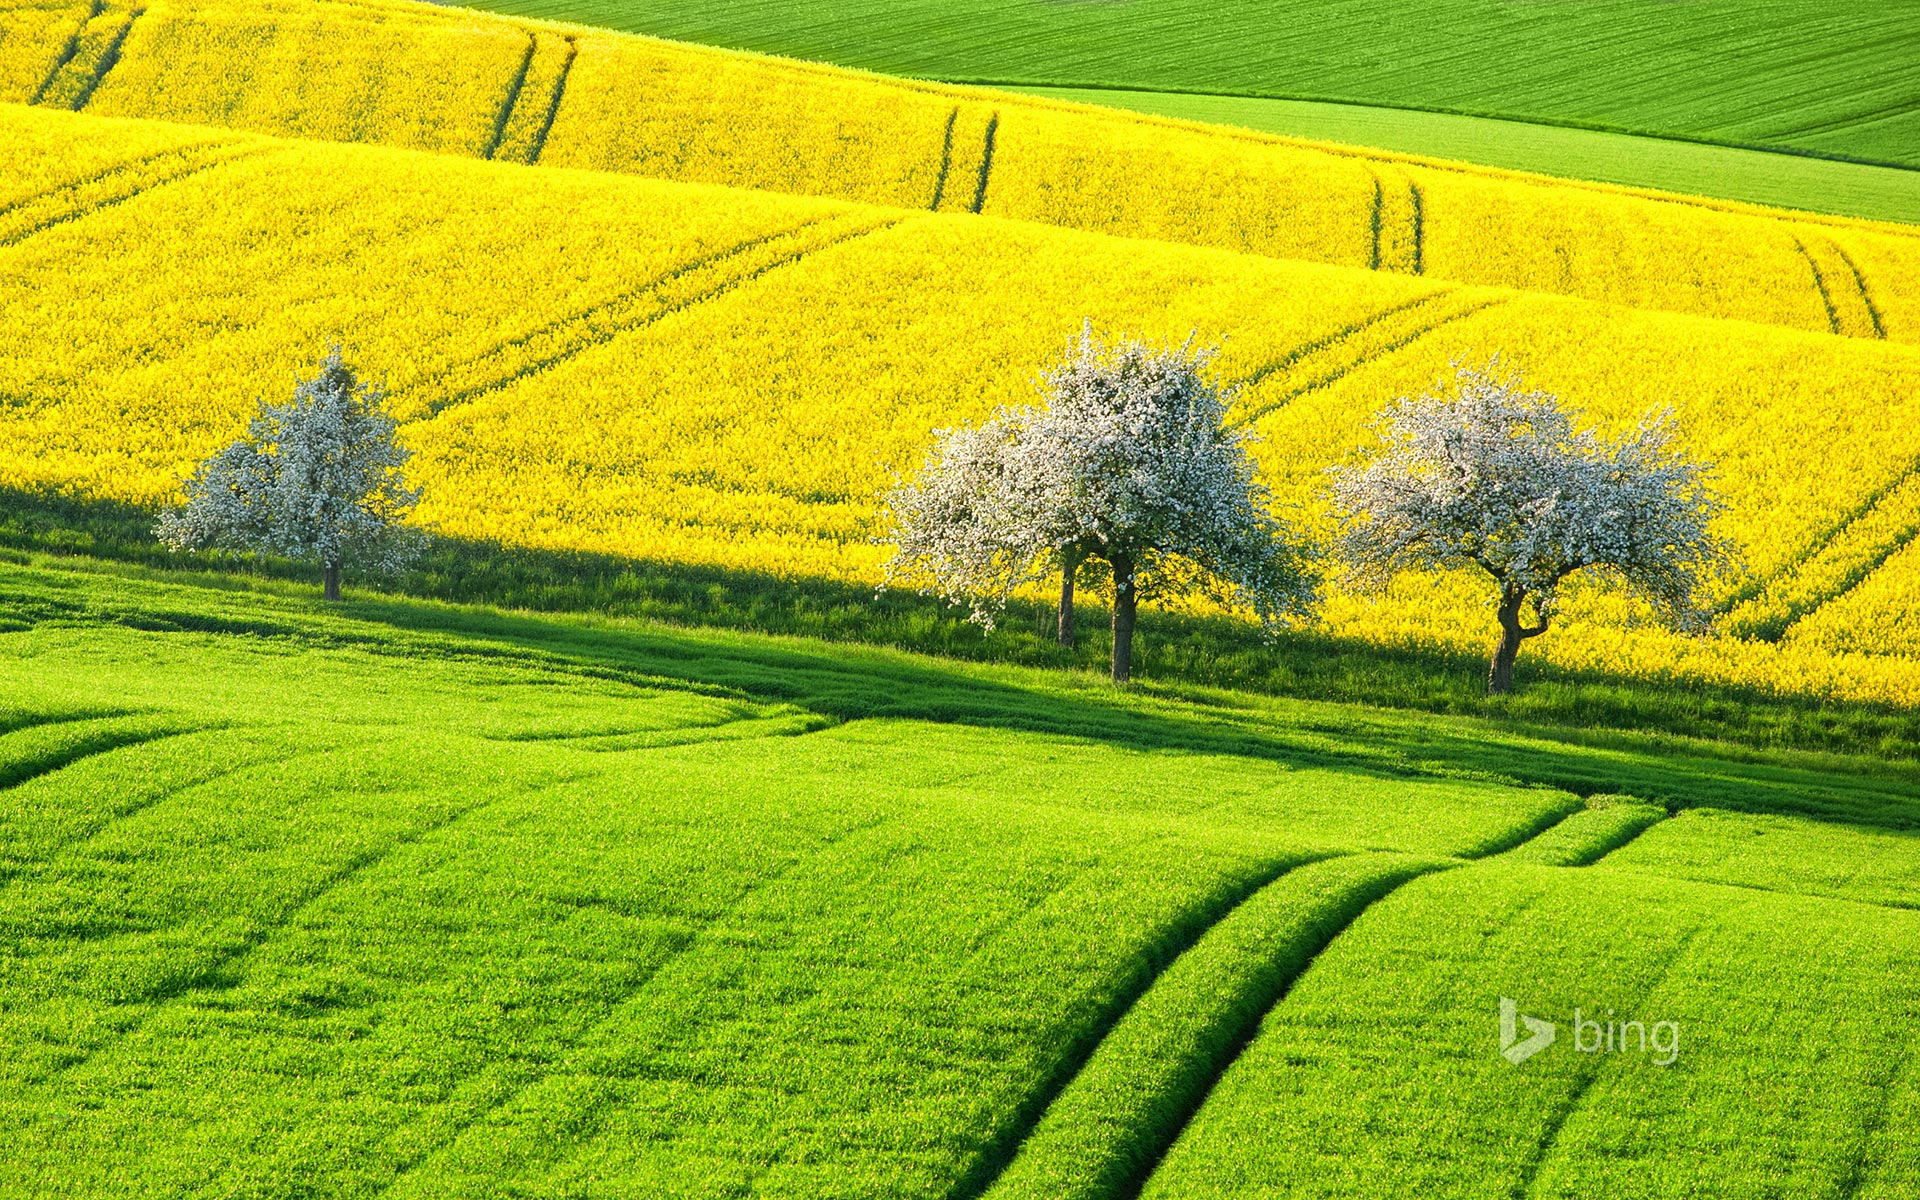 Canola fields in spring, Germany